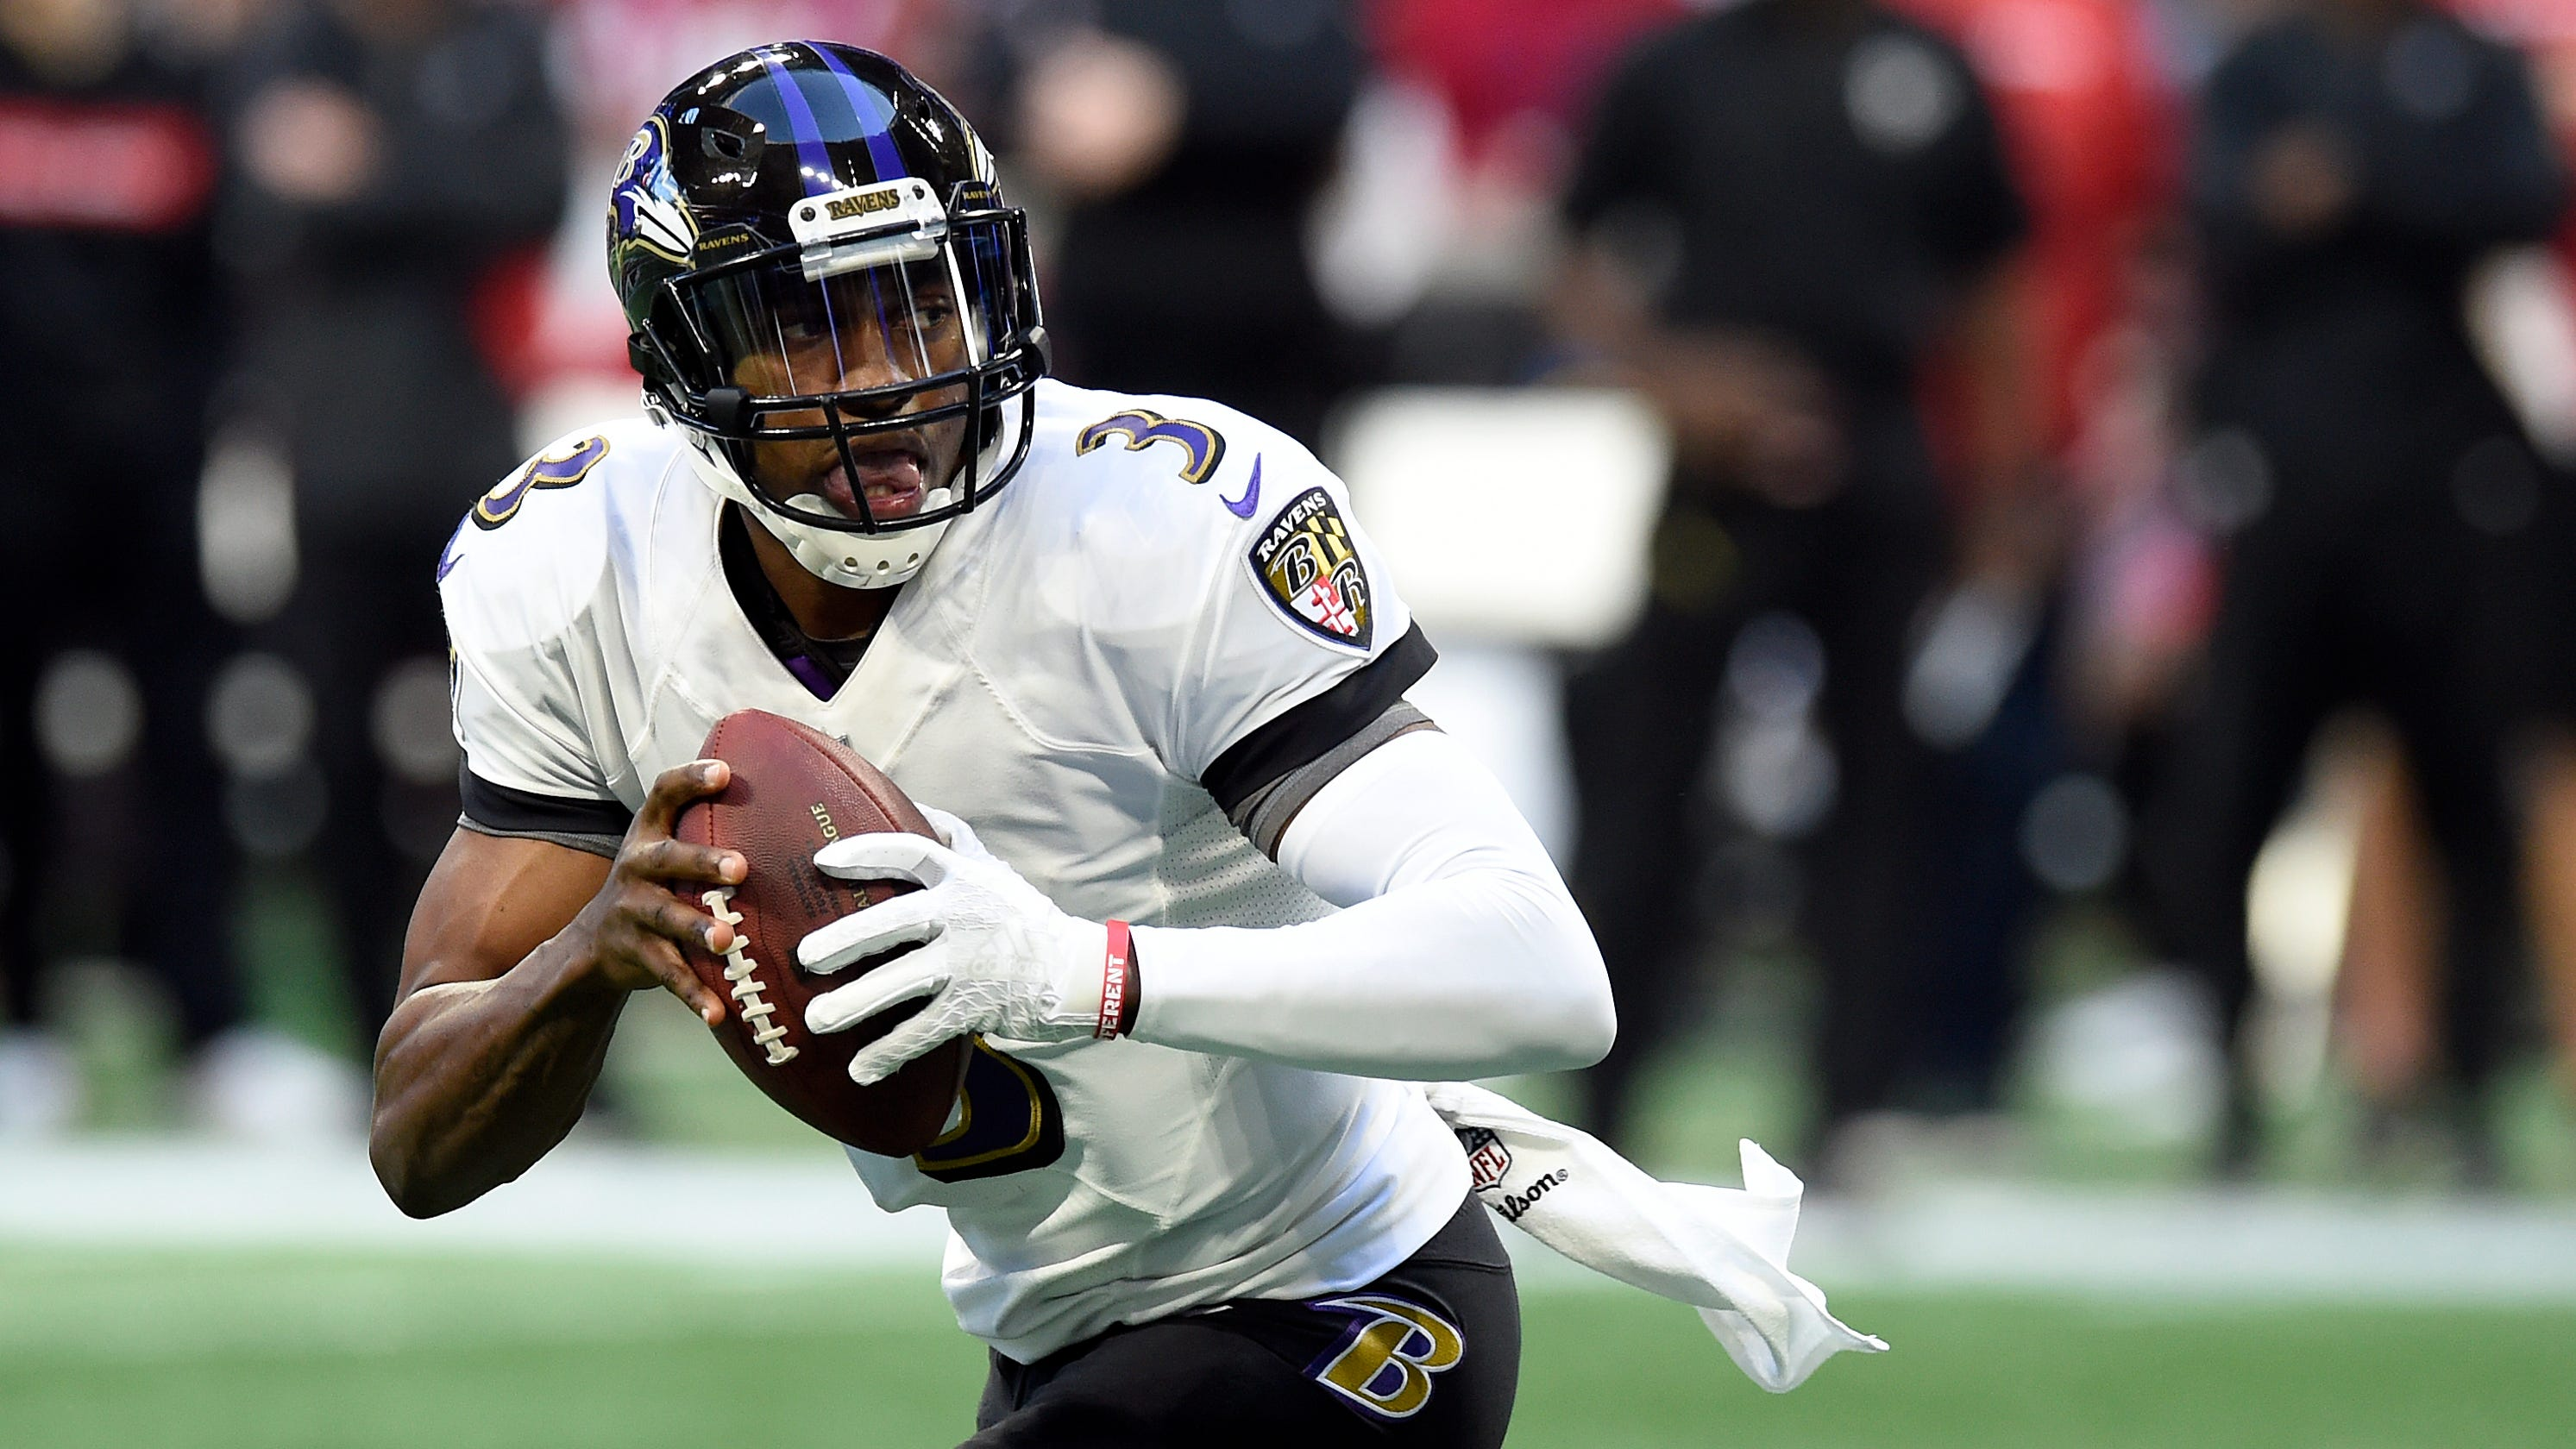 Ravens QB Robert Griffin III sued by former agent for breach of contract